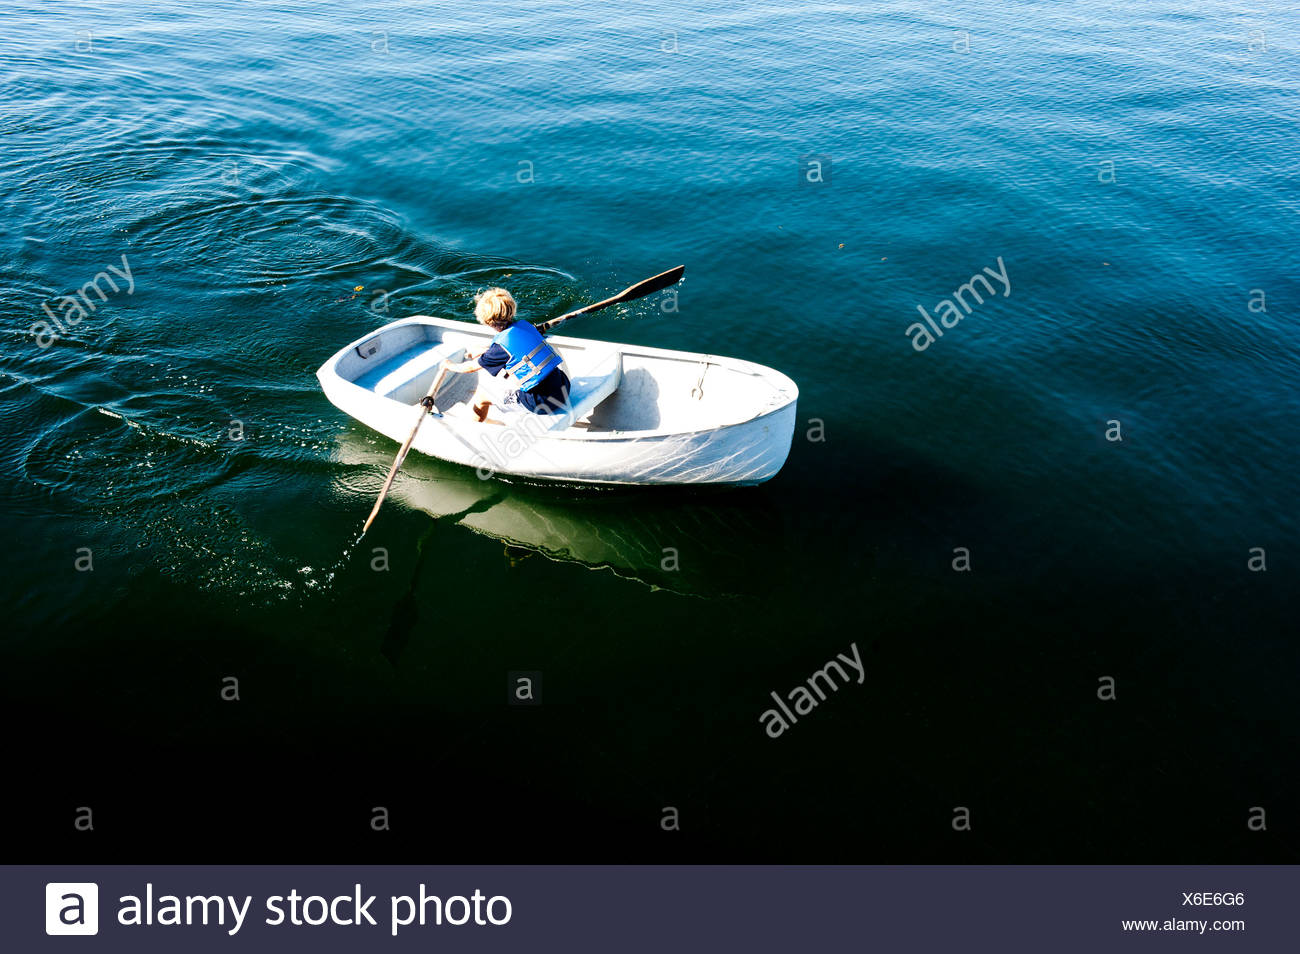 a boy rows a boat off an island in maine - Stock Image